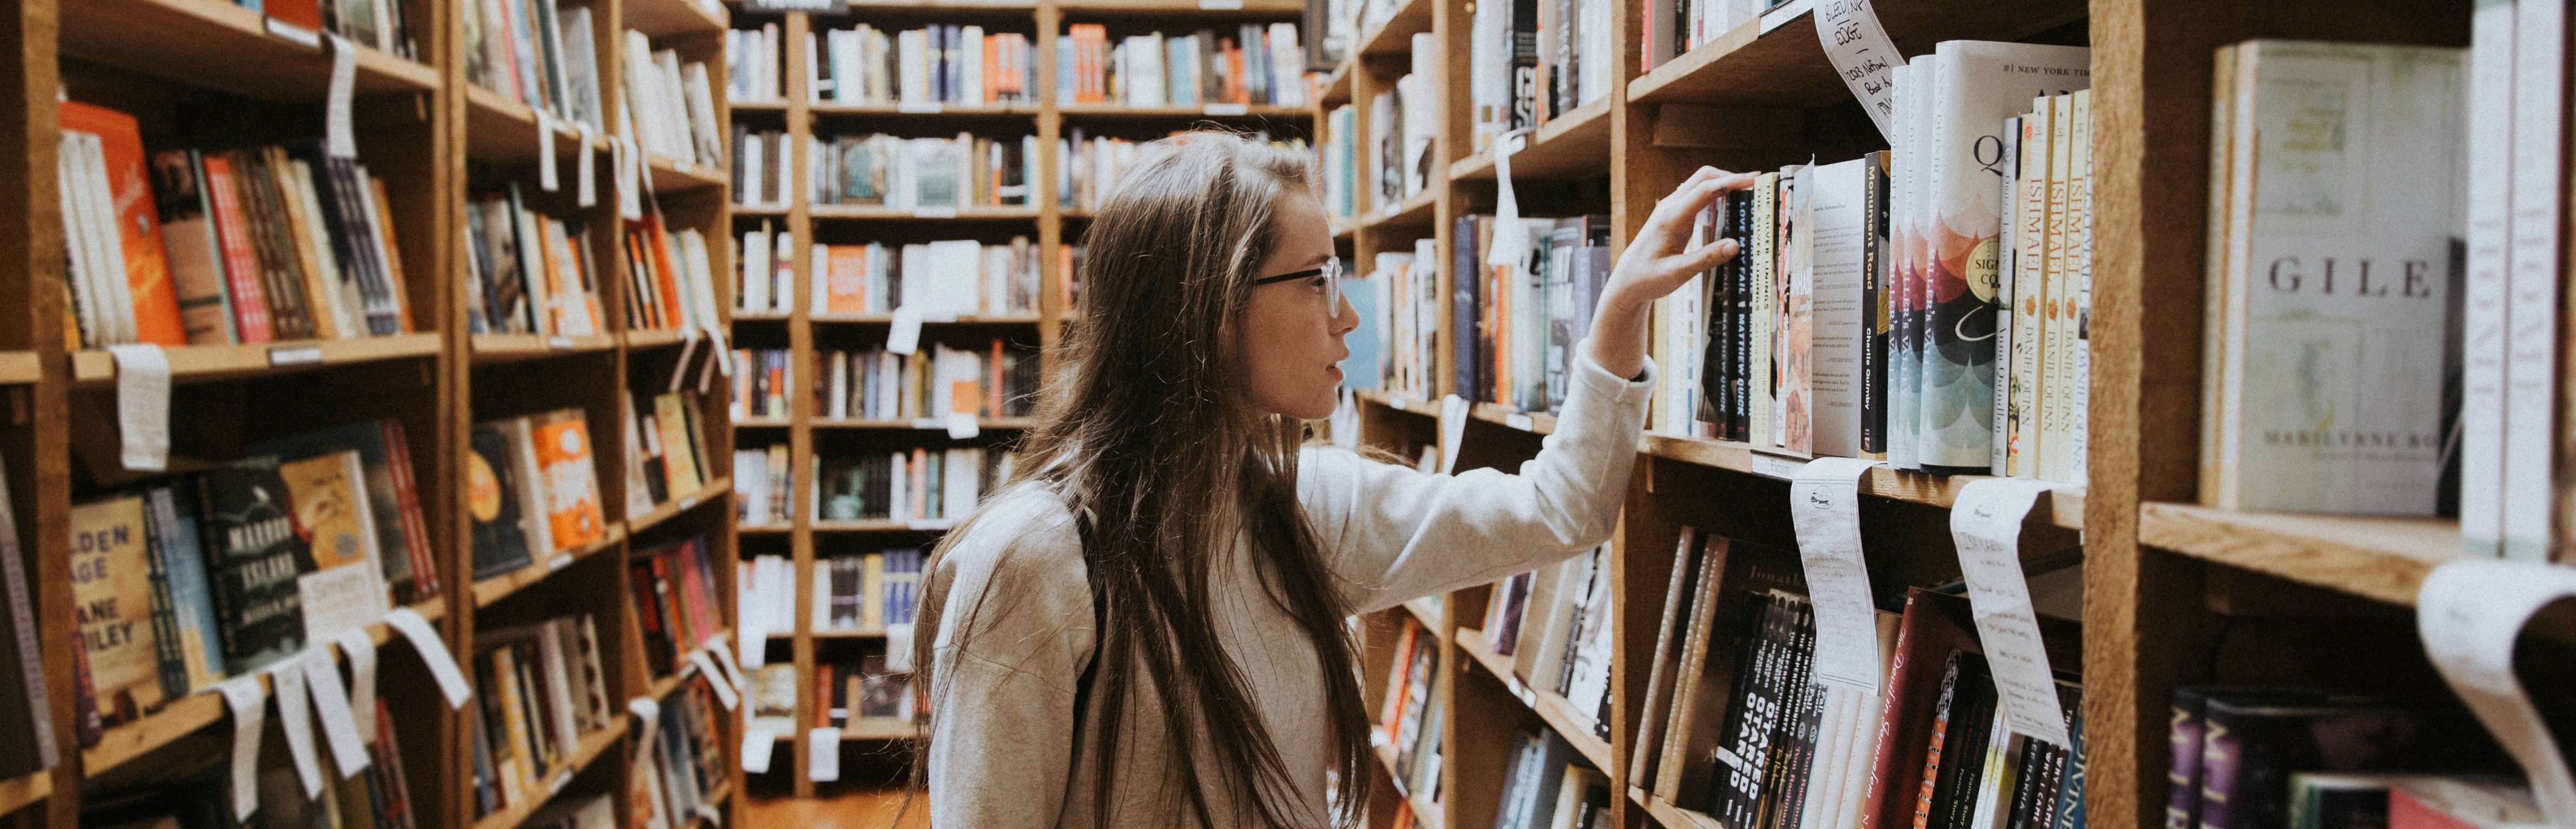 Photo by Becca Tapert on Unsplash. A woman holding library books amid library stacks.